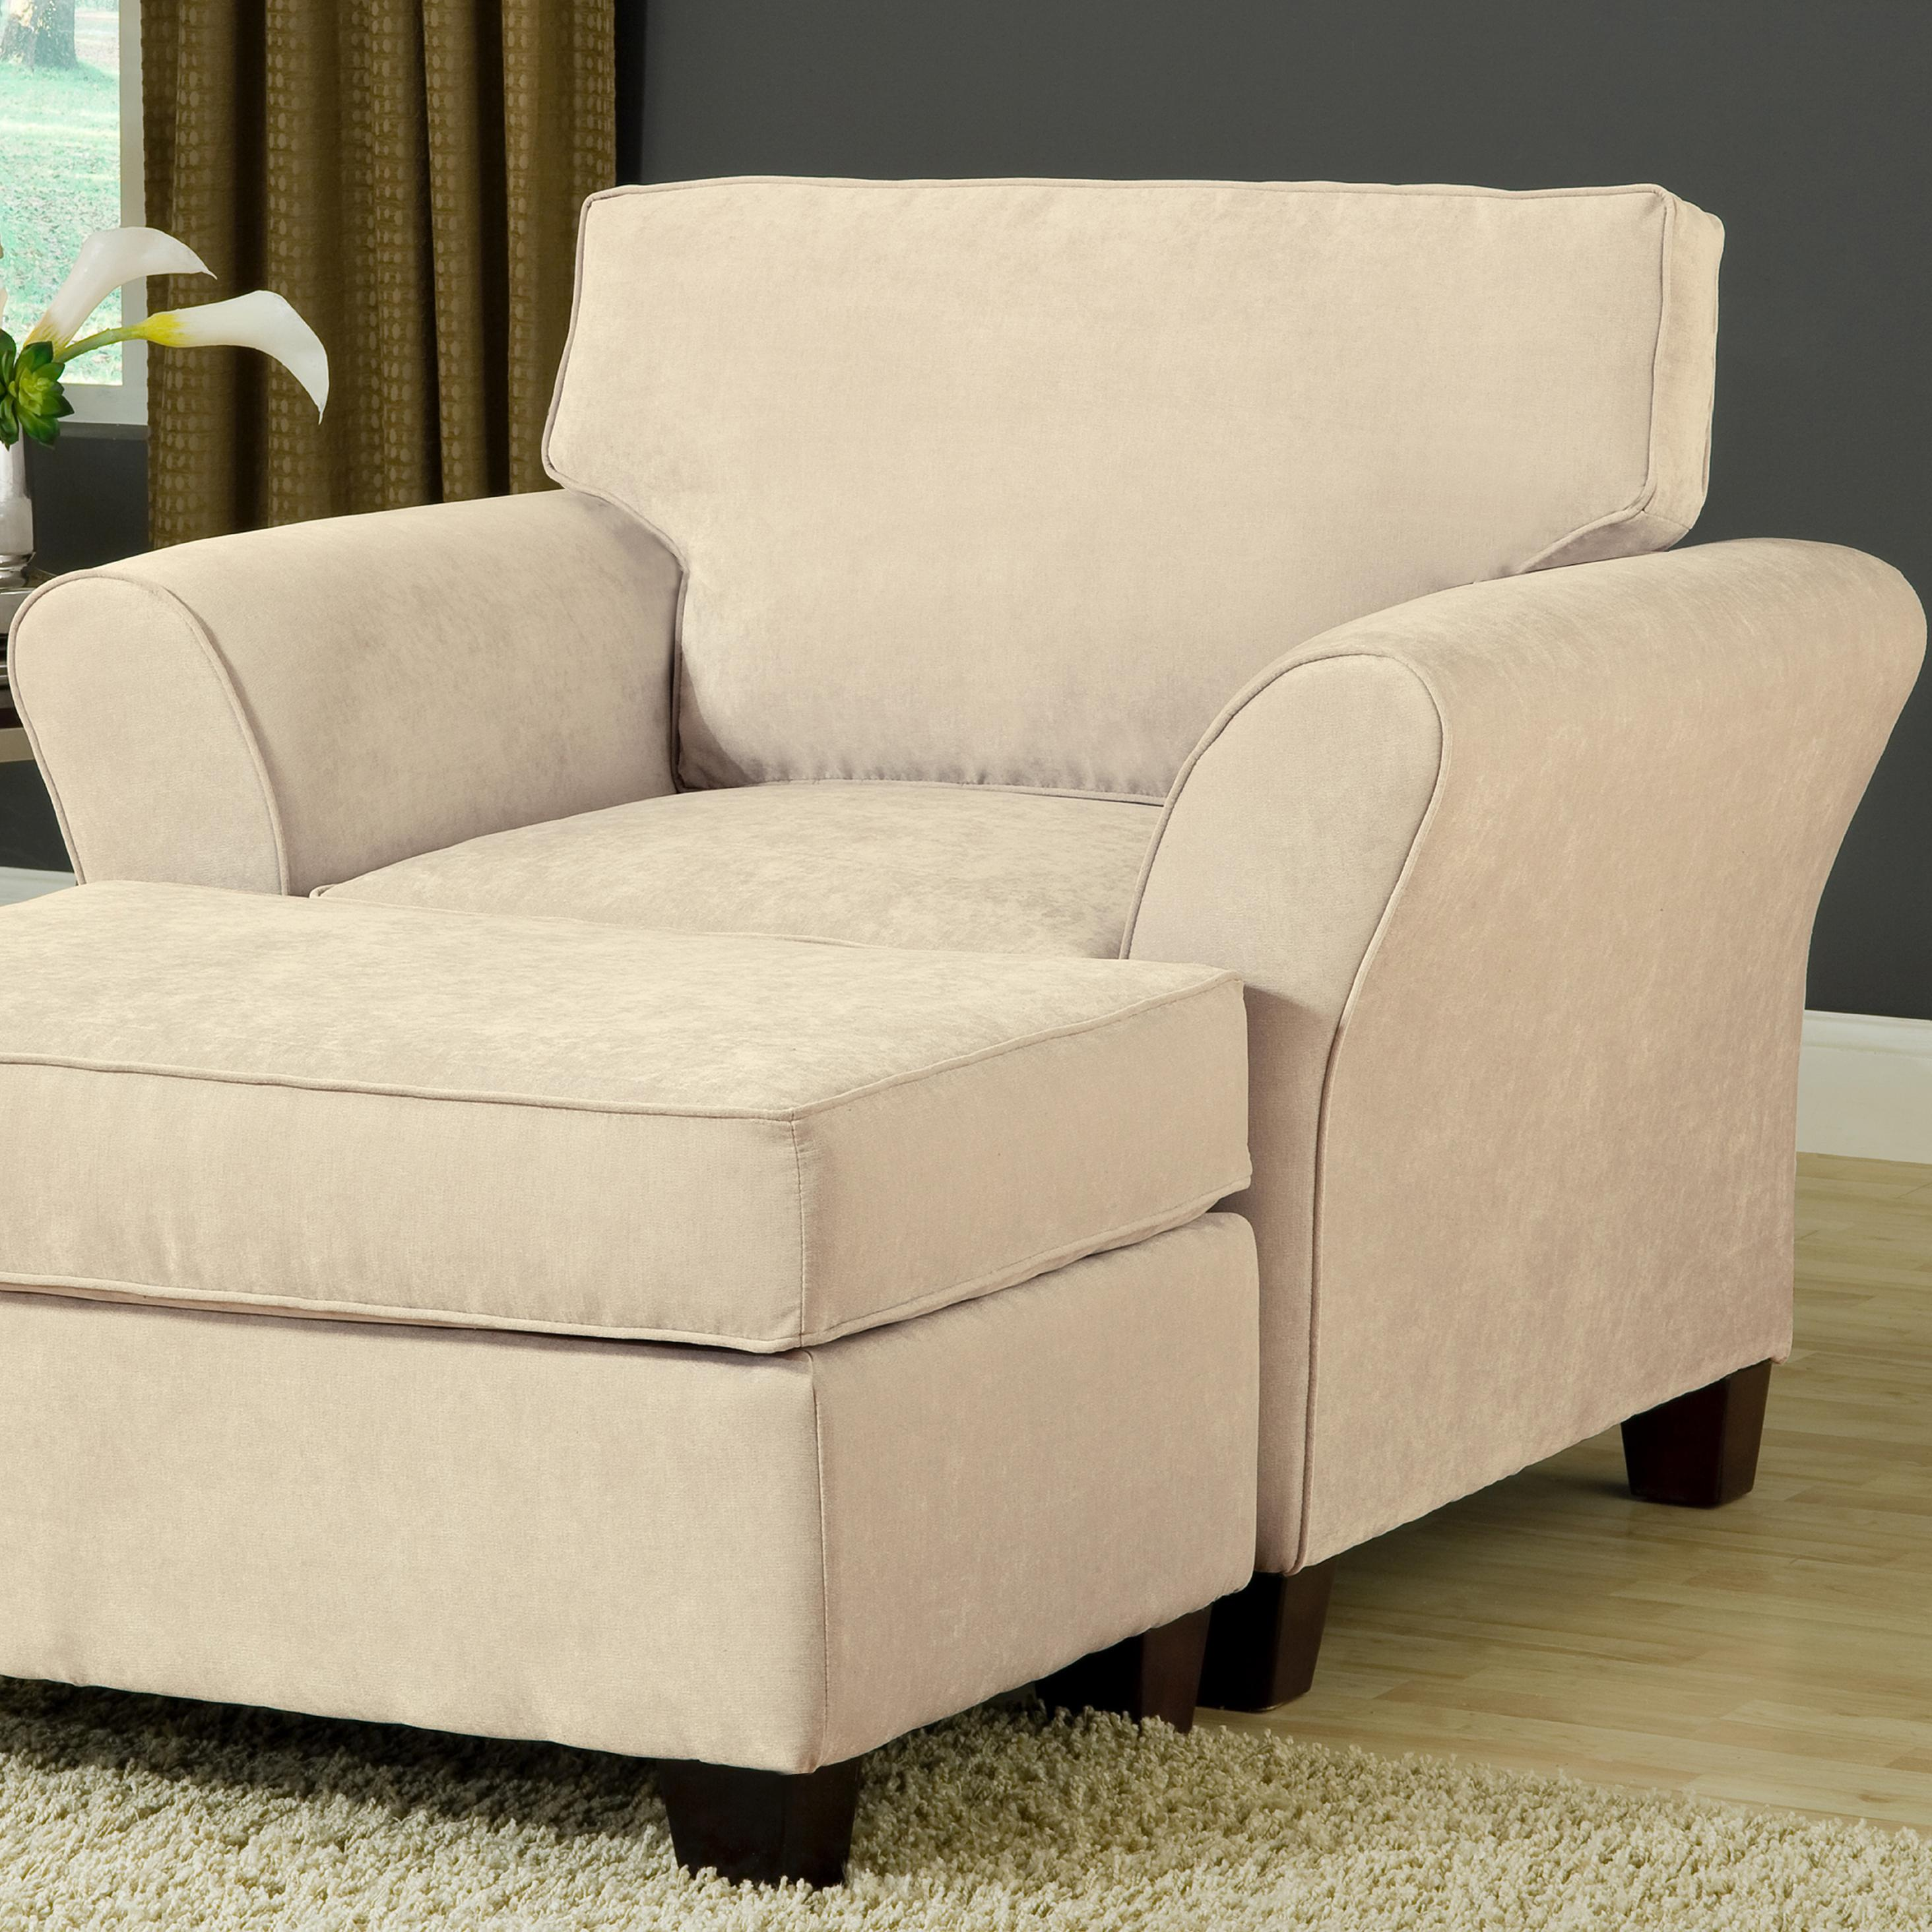 Addison 8400 Upholstered Chair by VFM Essentials at Virginia Furniture Market